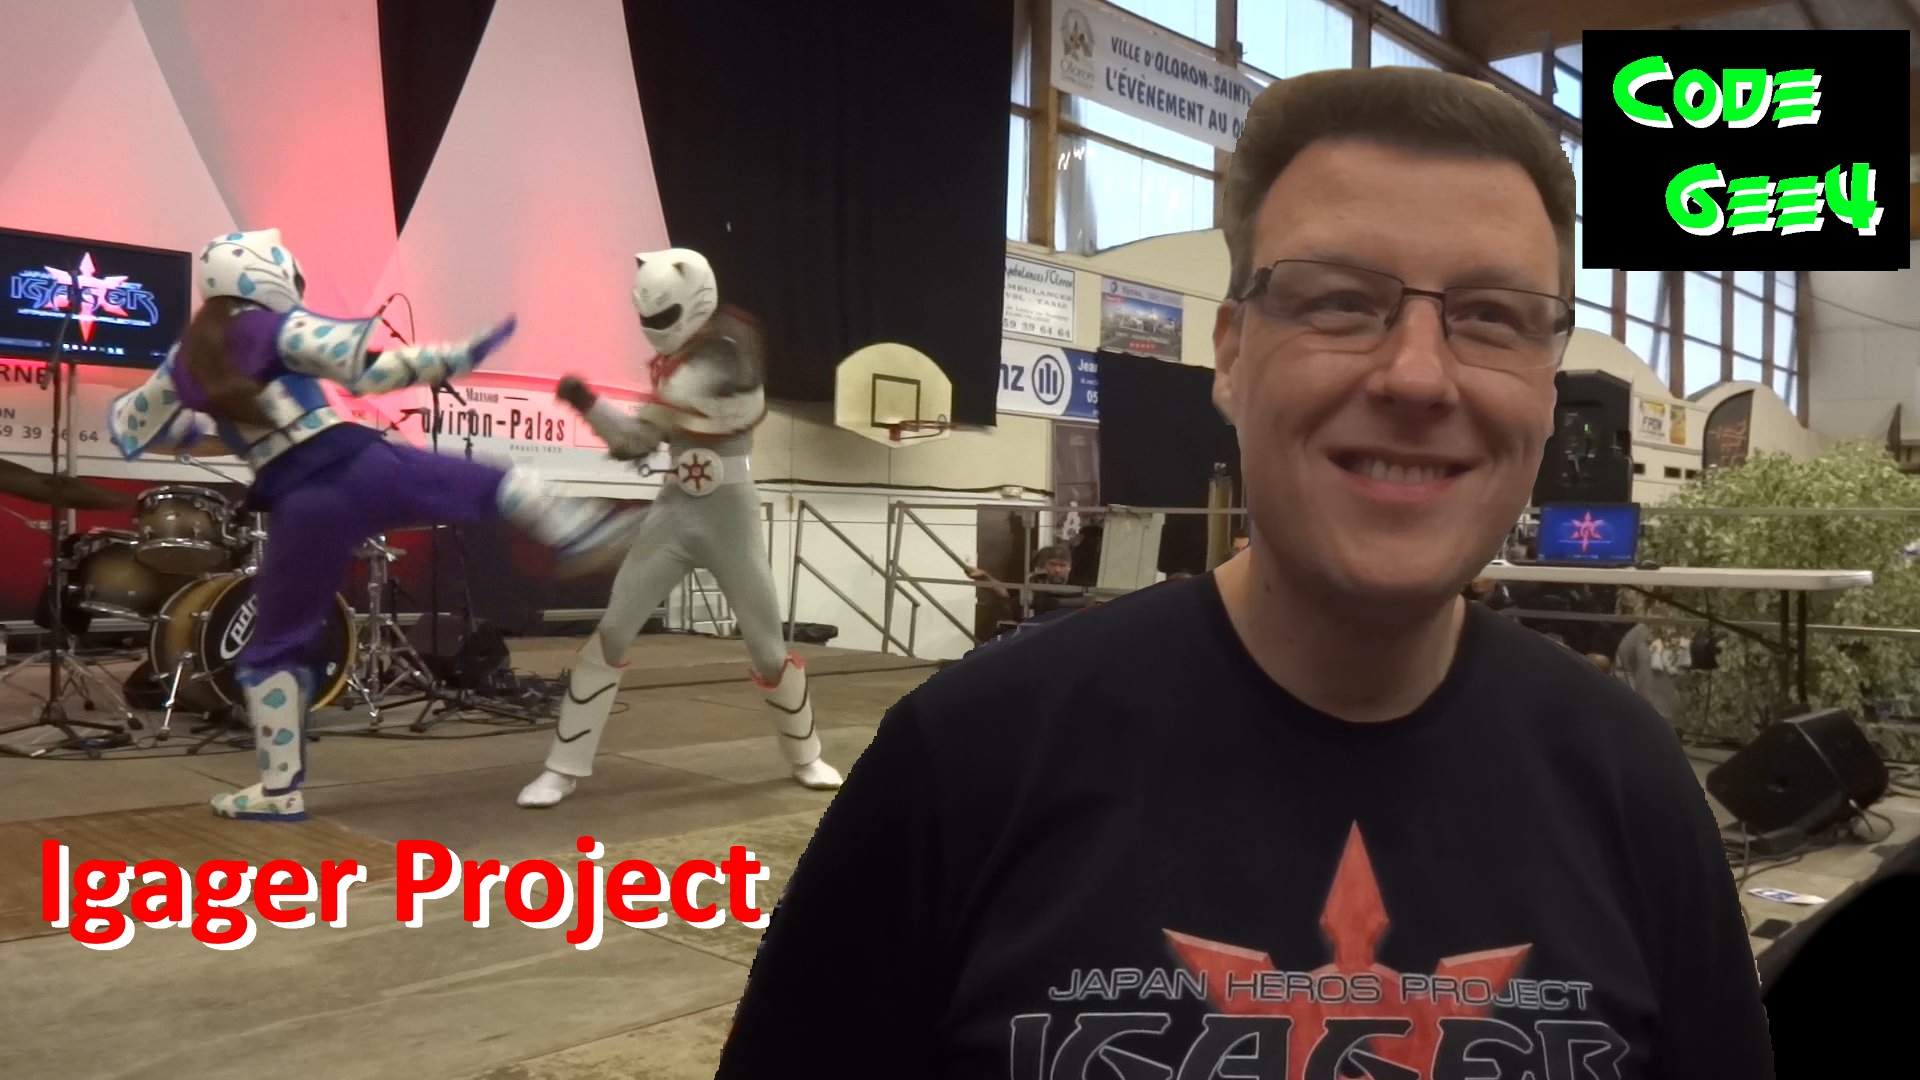 Code 6ee4 N°6  - Igager project